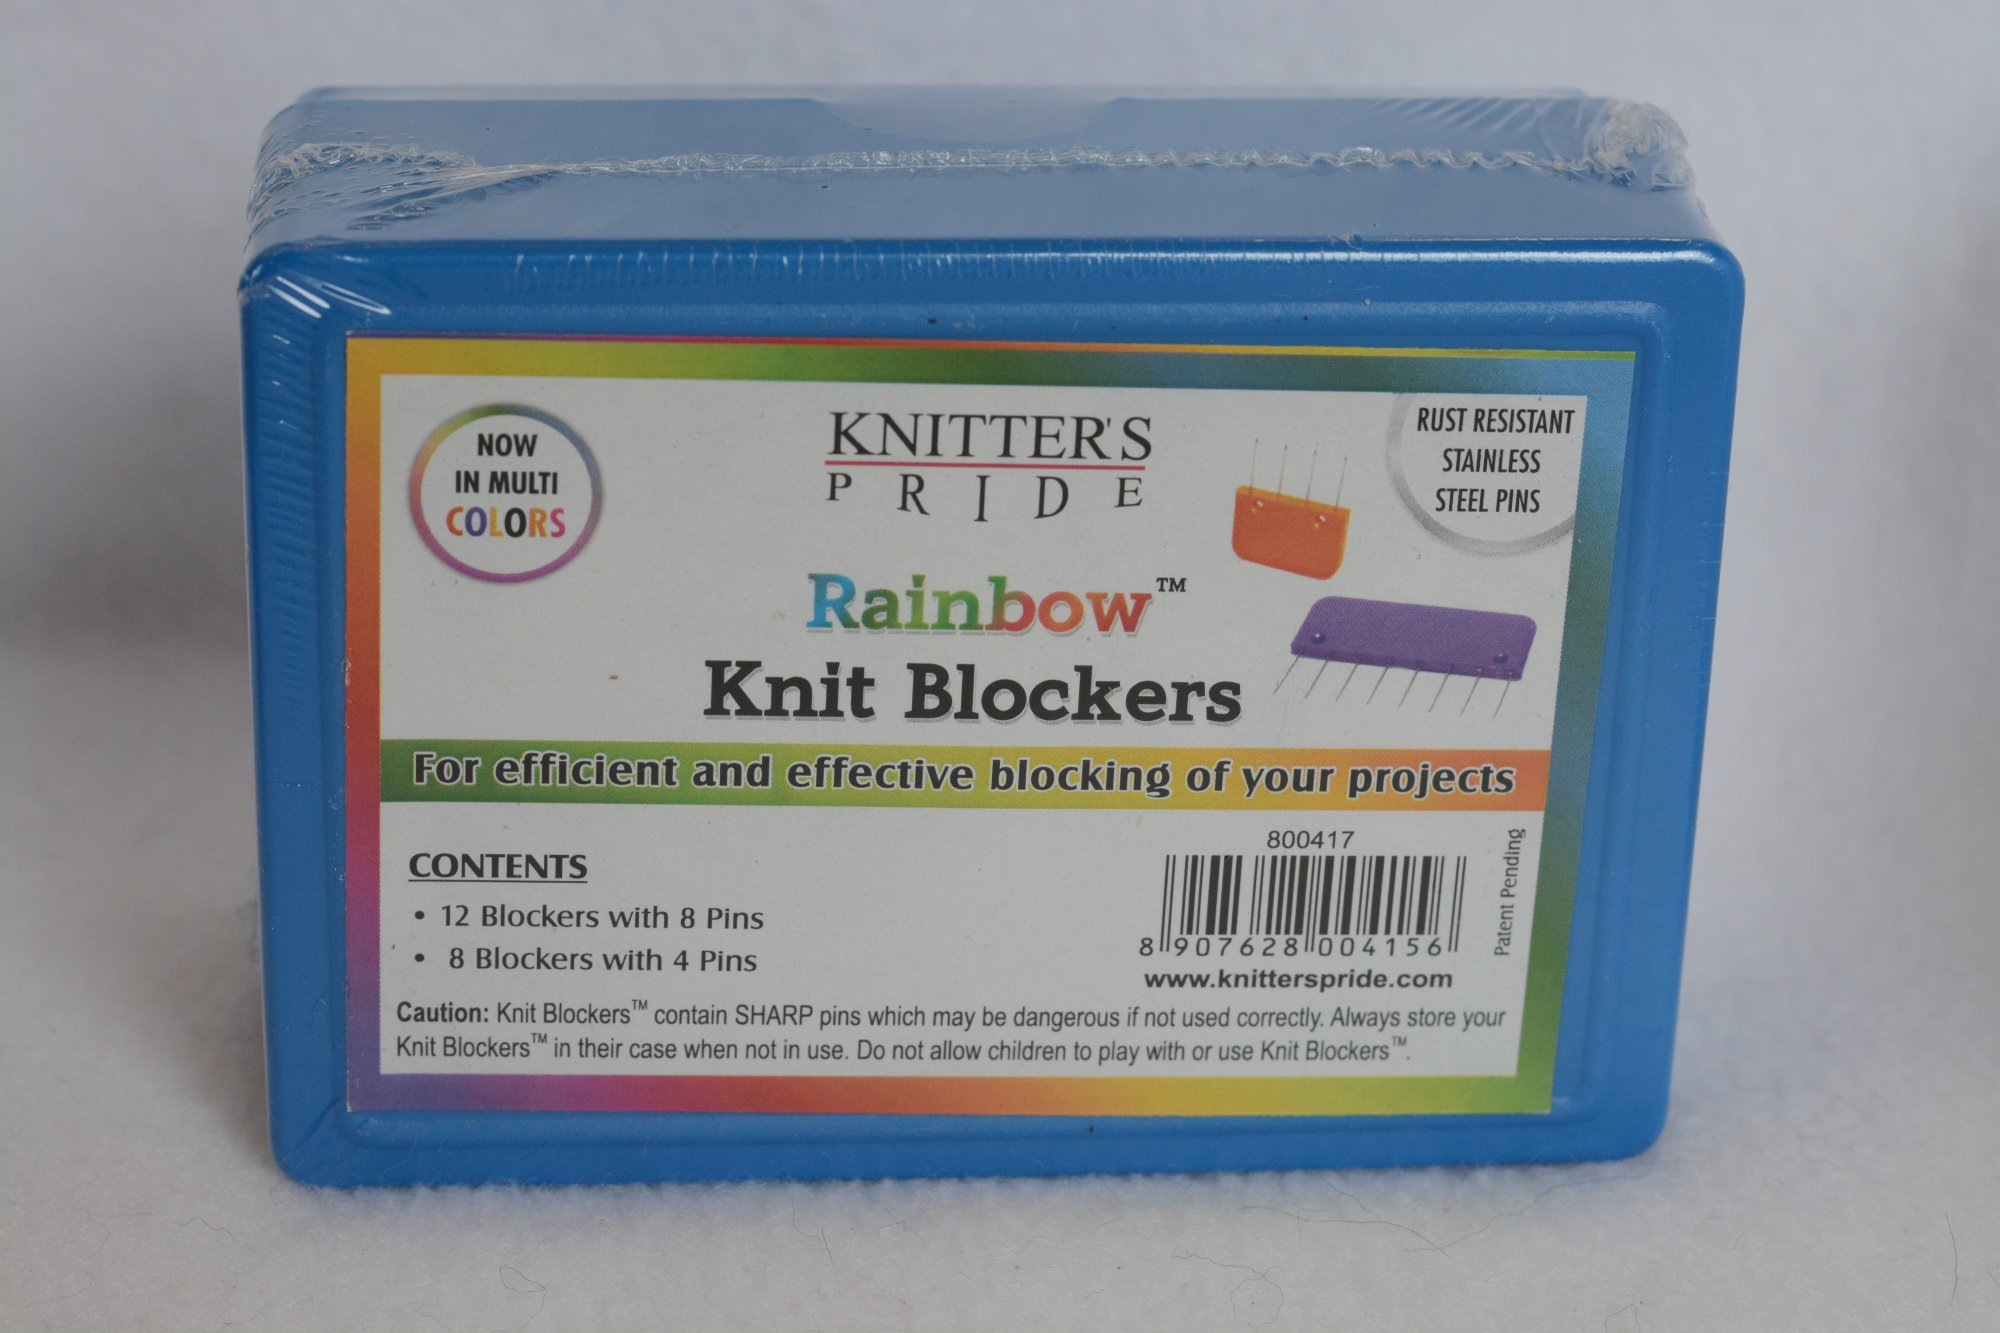 Rainbow Knit Blockers by Knitter's Pride